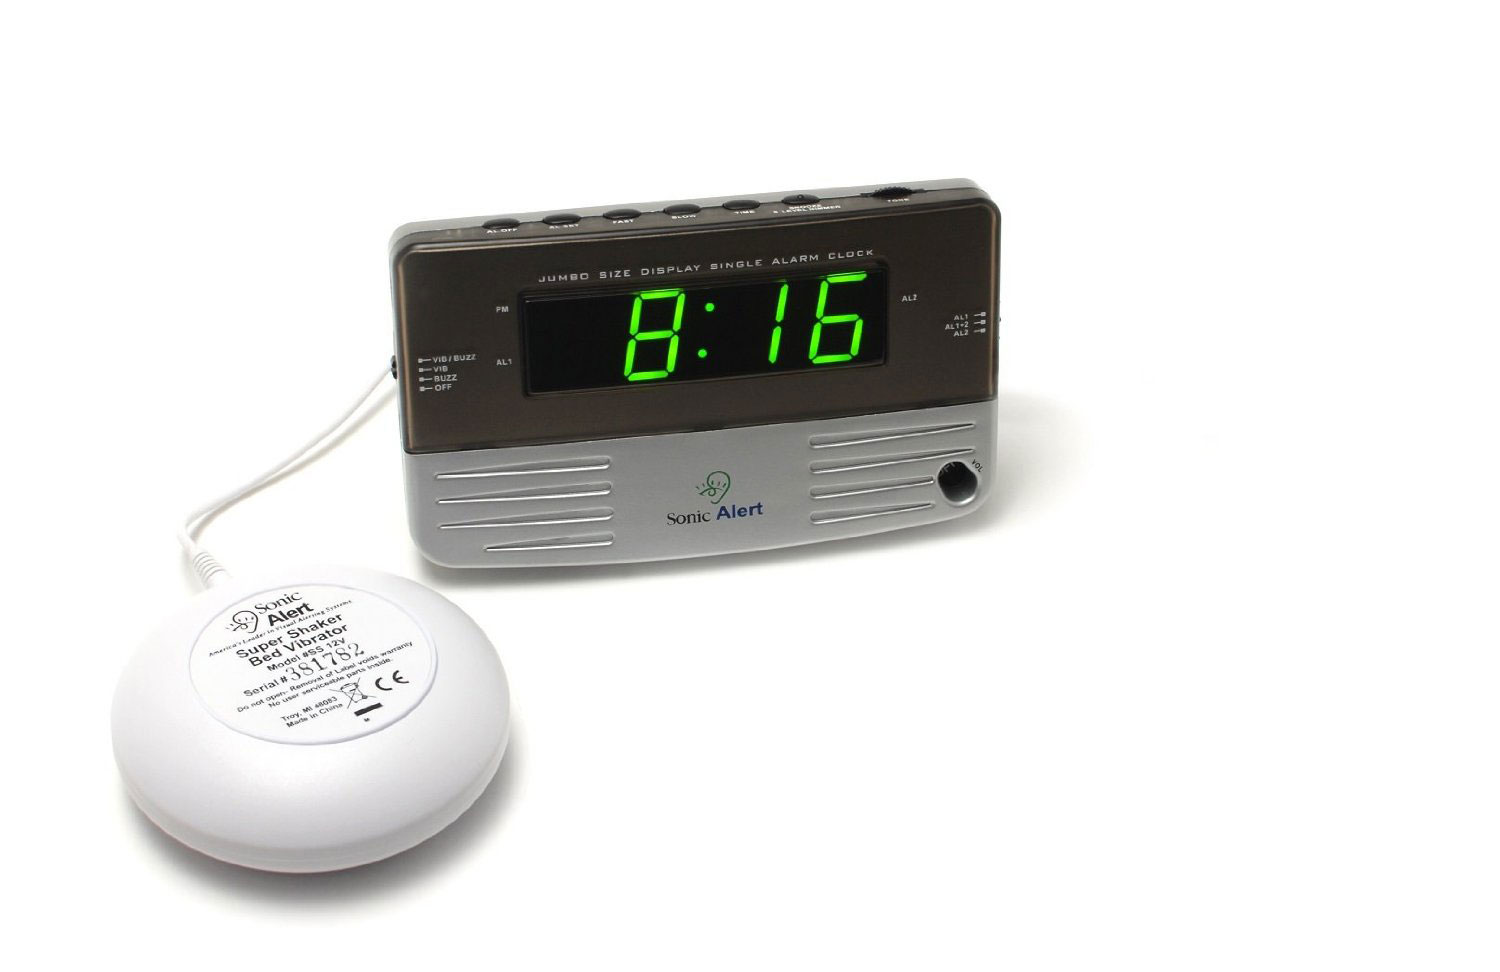 Best Overall: Sonic Alert Sonic Bomb Extra-Loud Dual Alarm Clock